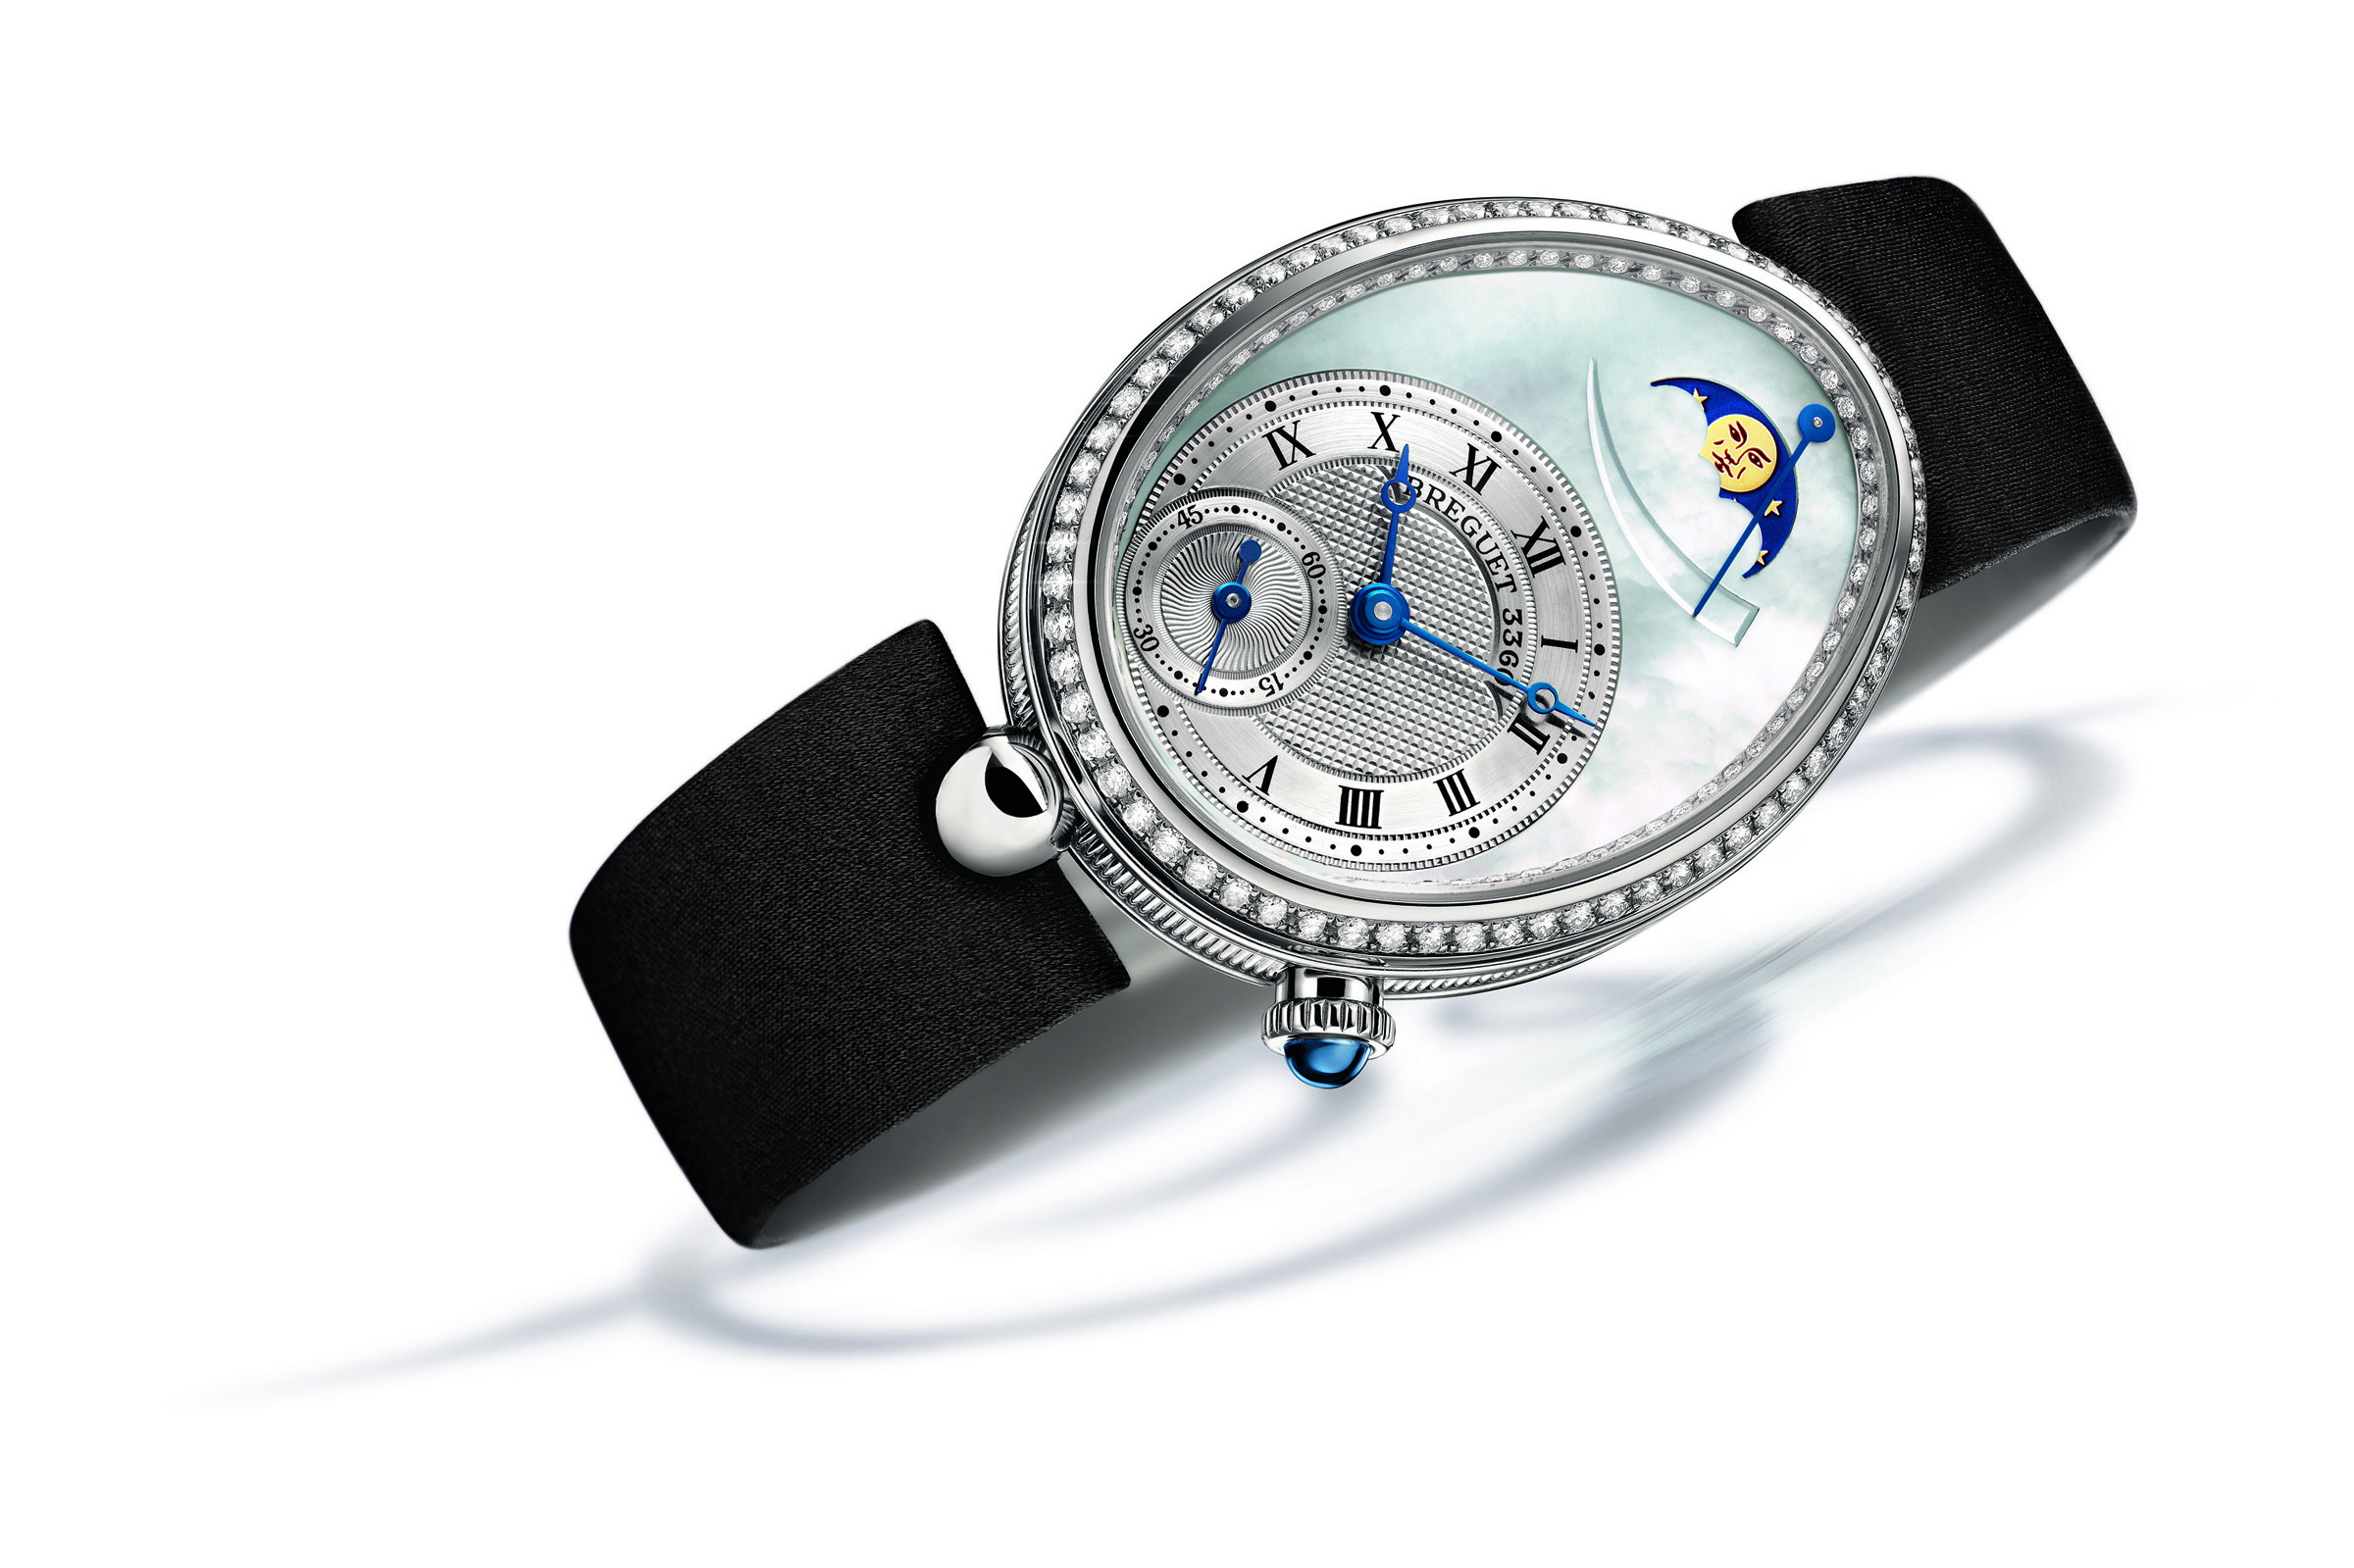 Breguet Ladies Watch- Reine de Naples Collection